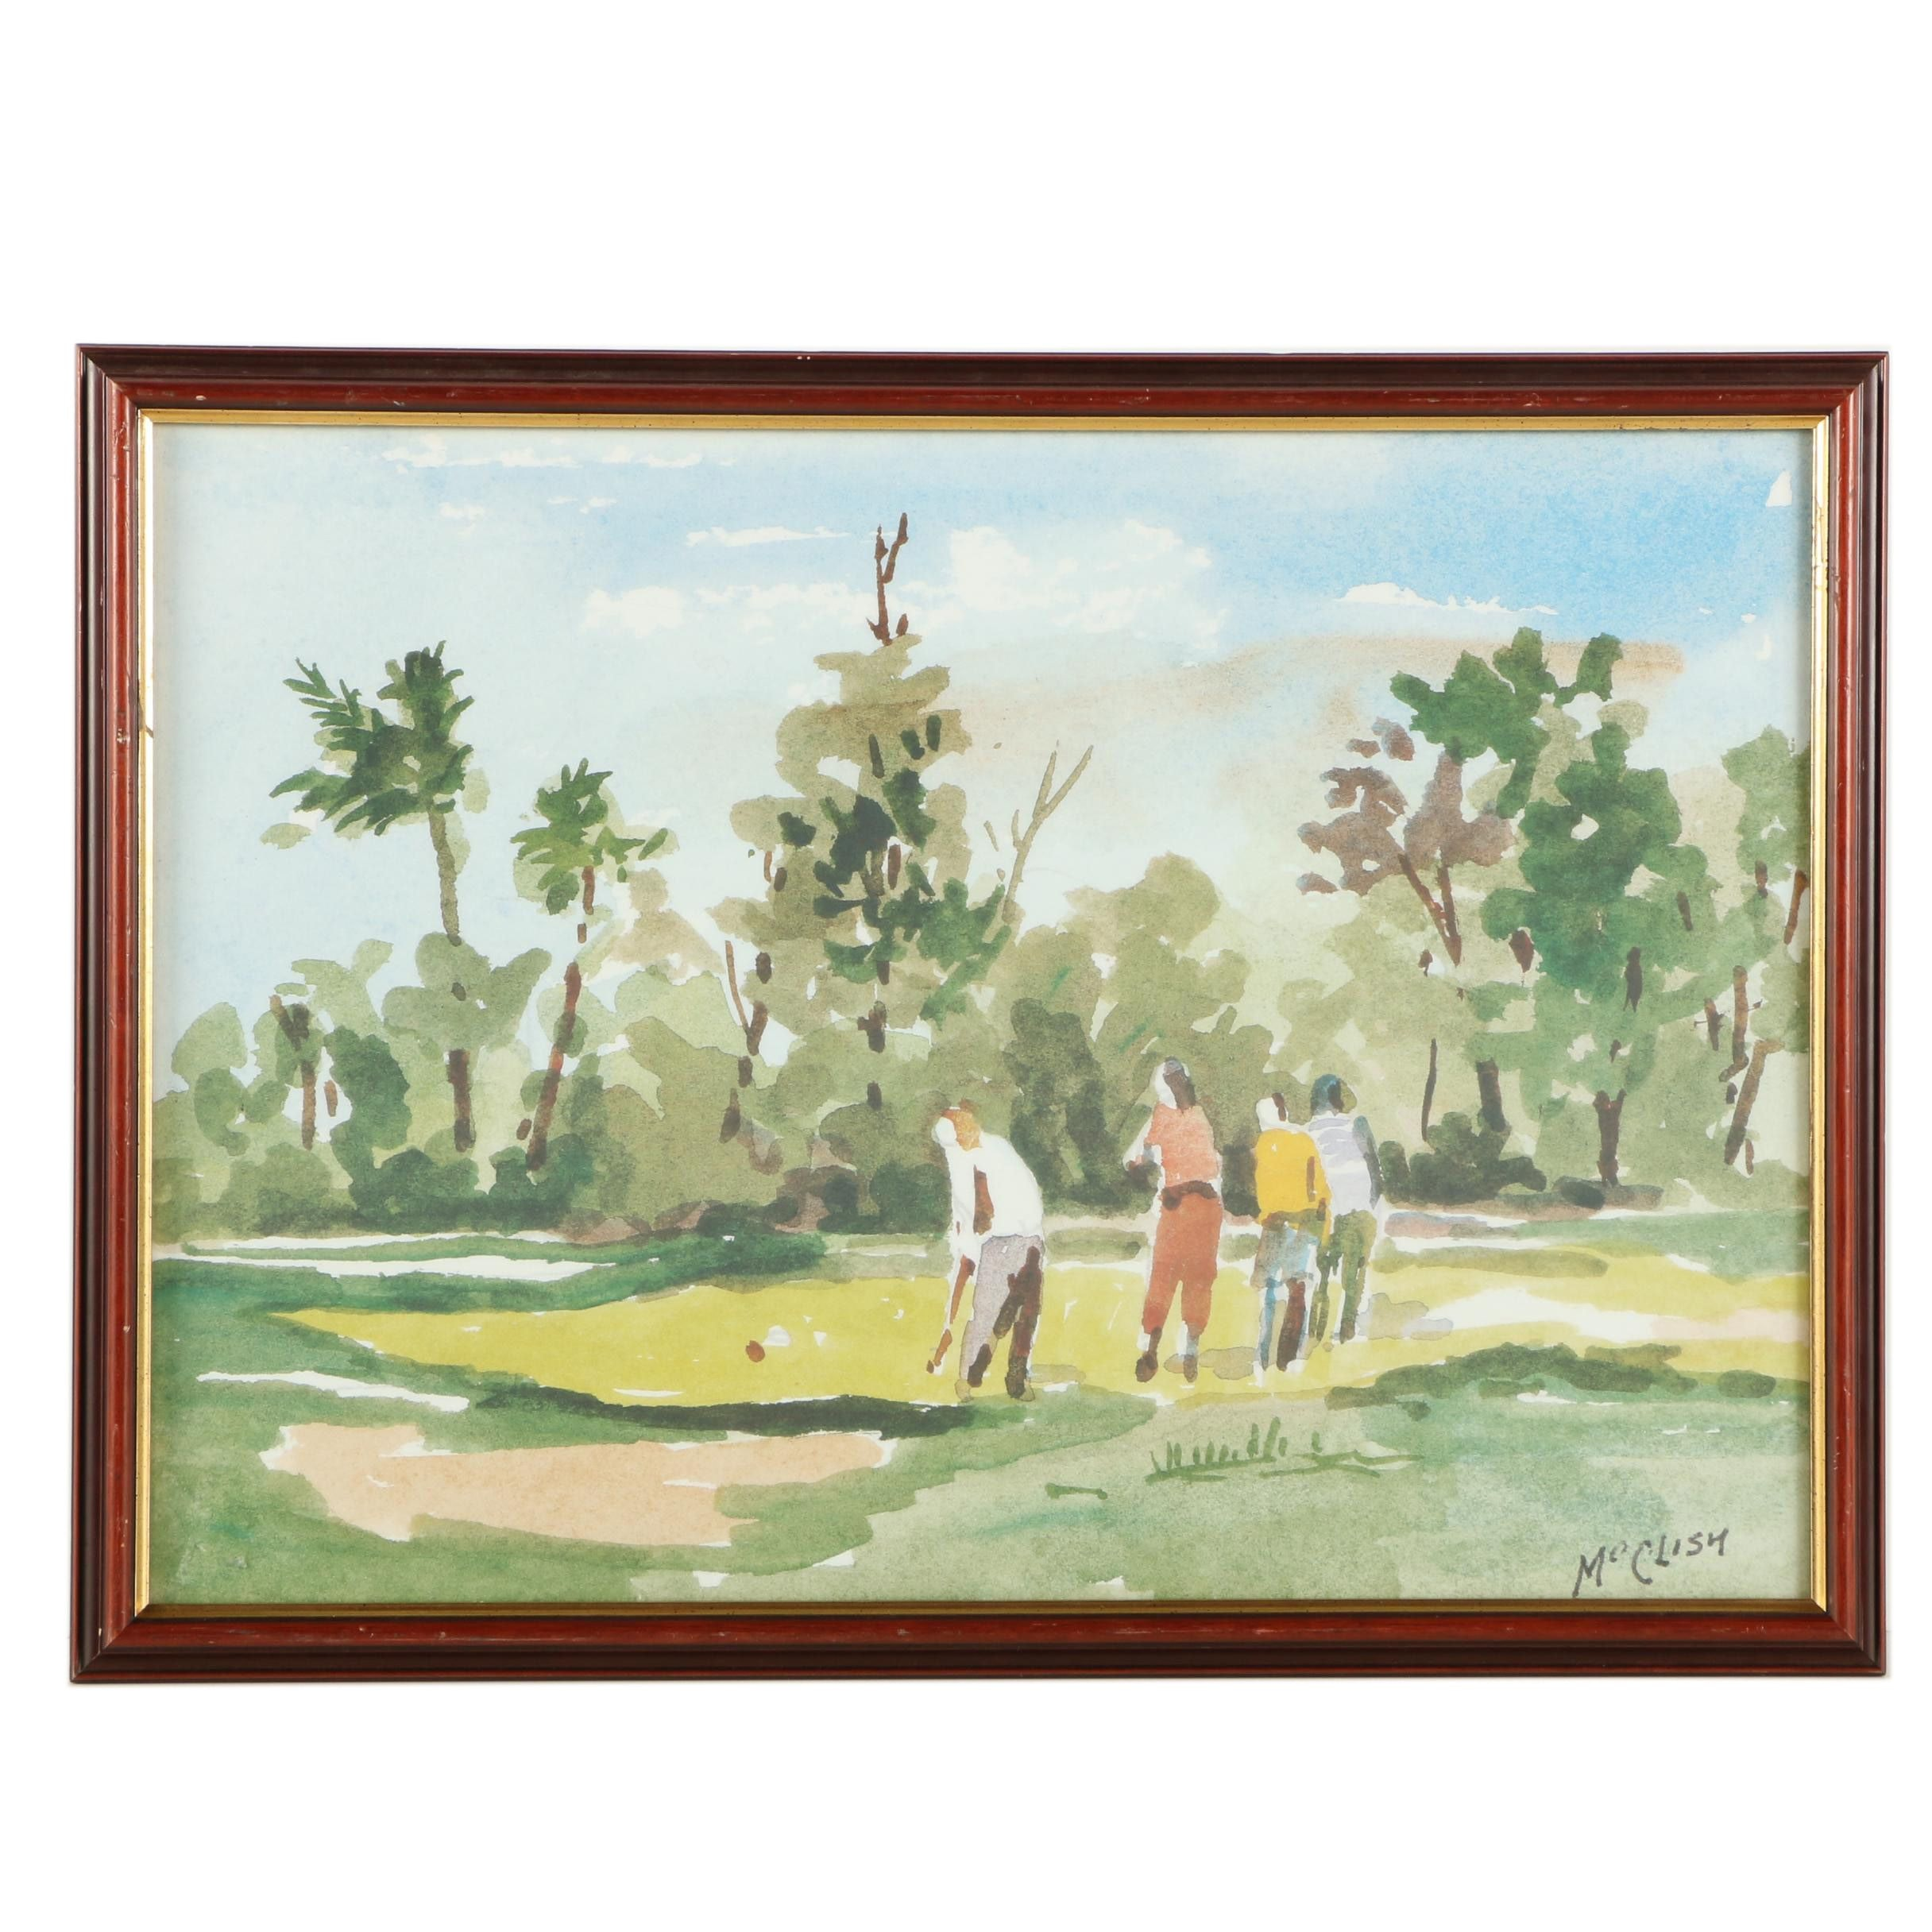 McClish Offset Lithograph of Golf Players